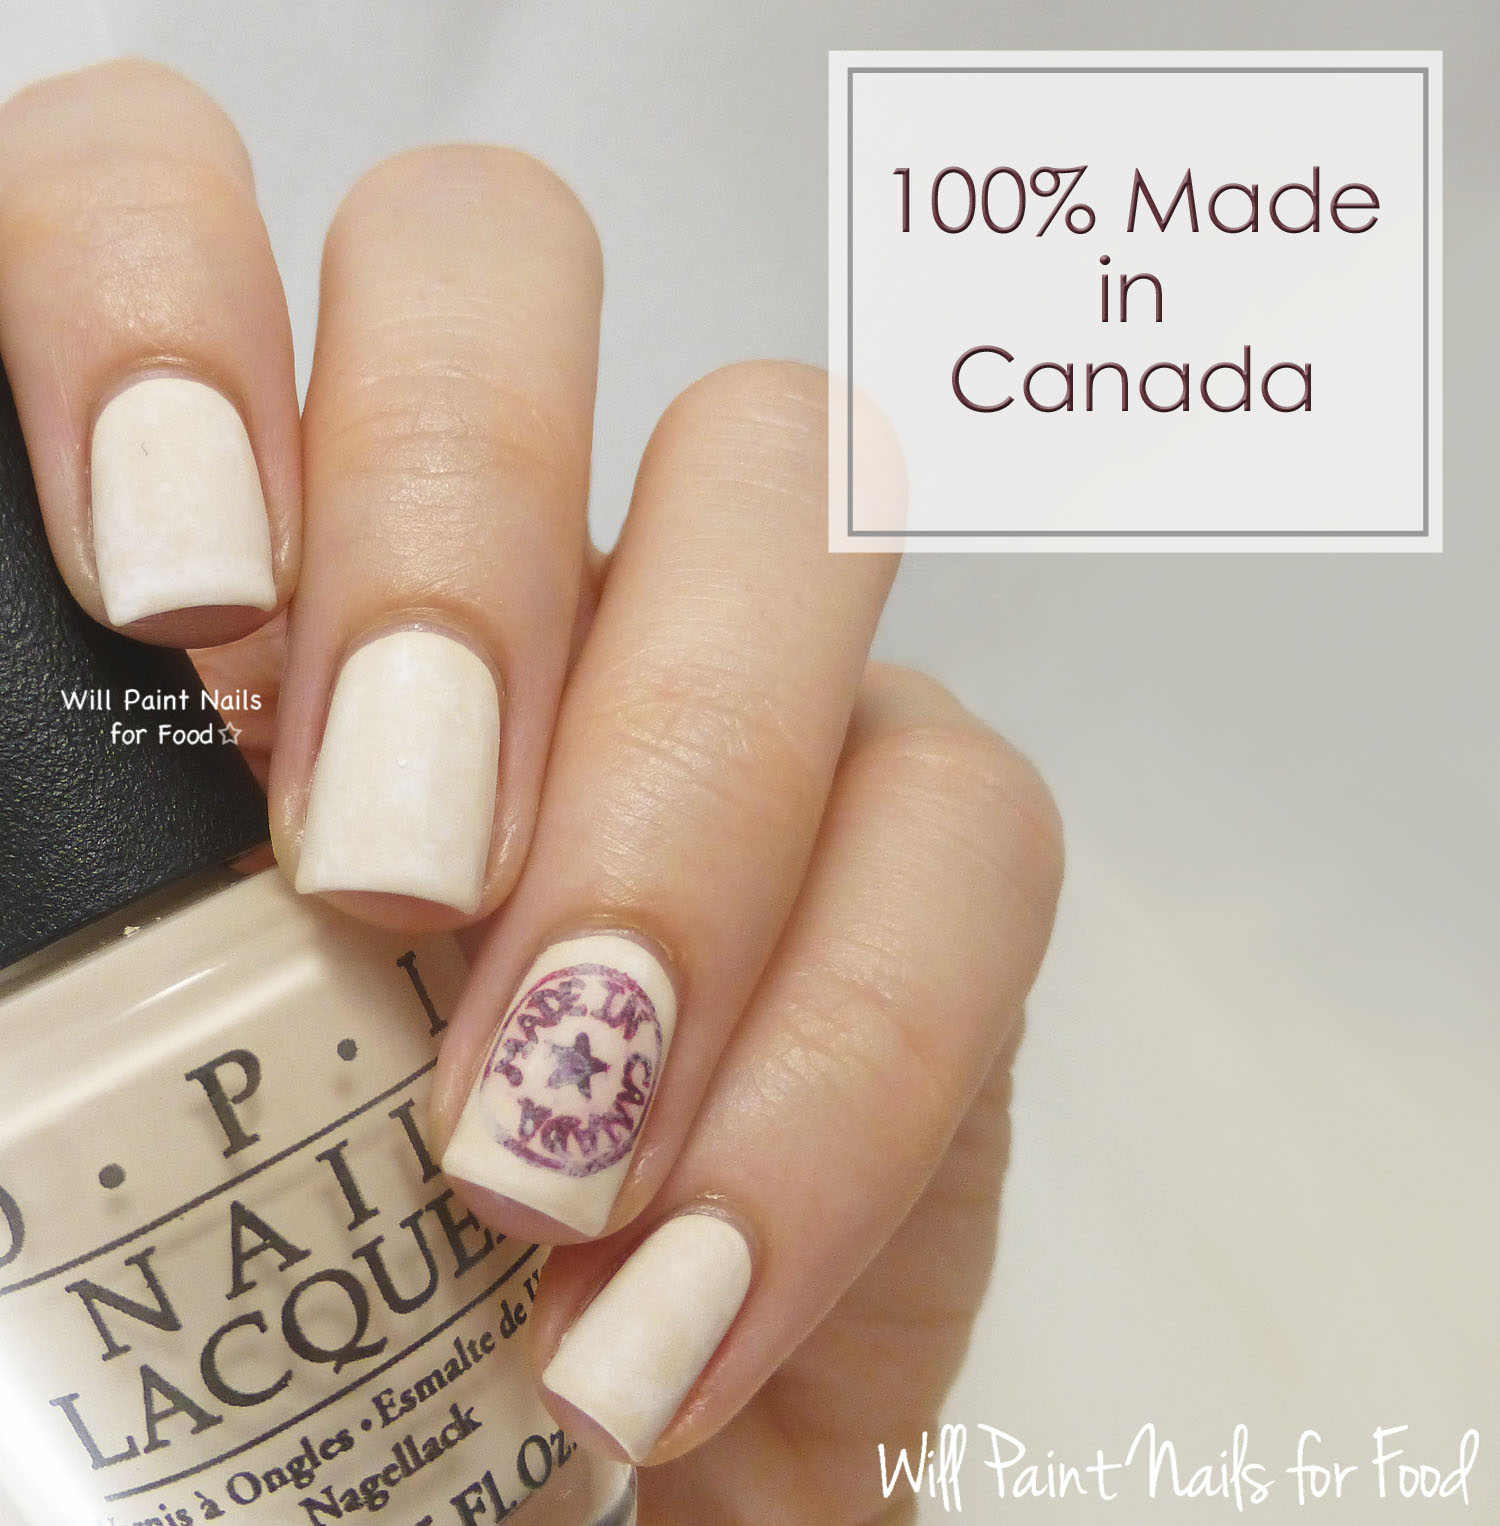 Made in Canada logo nail art